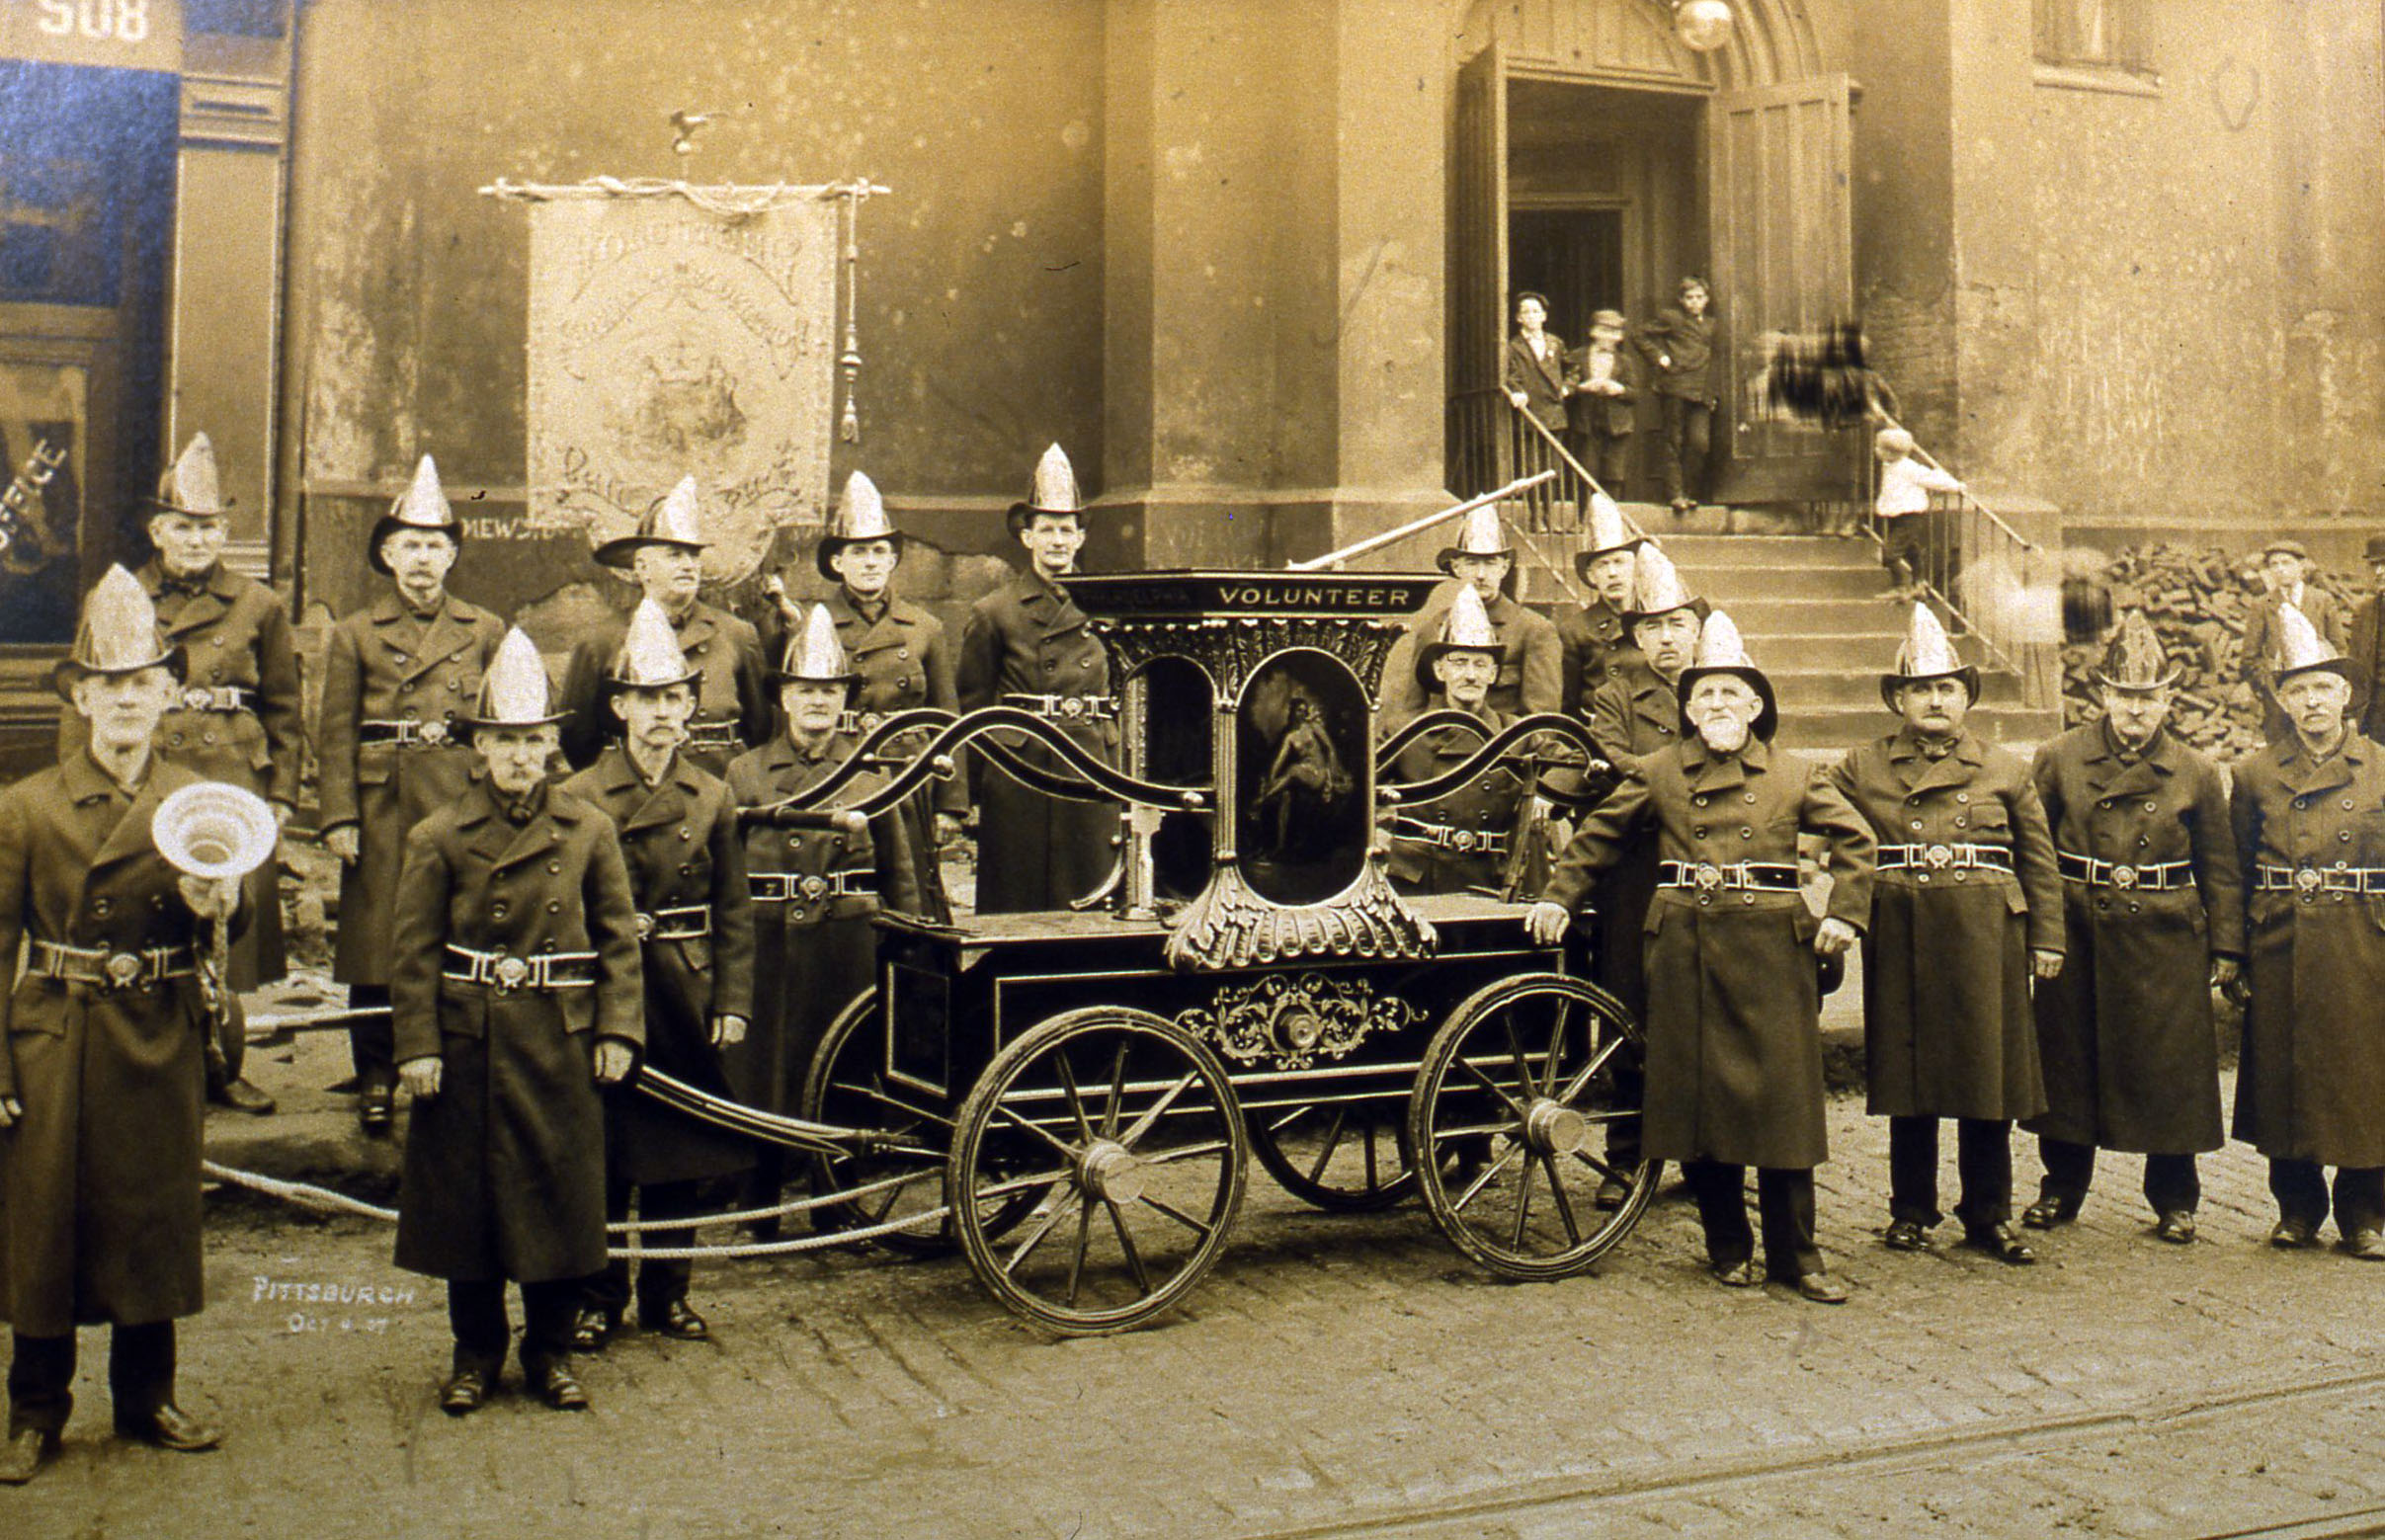 1800 firefighters images reverse search